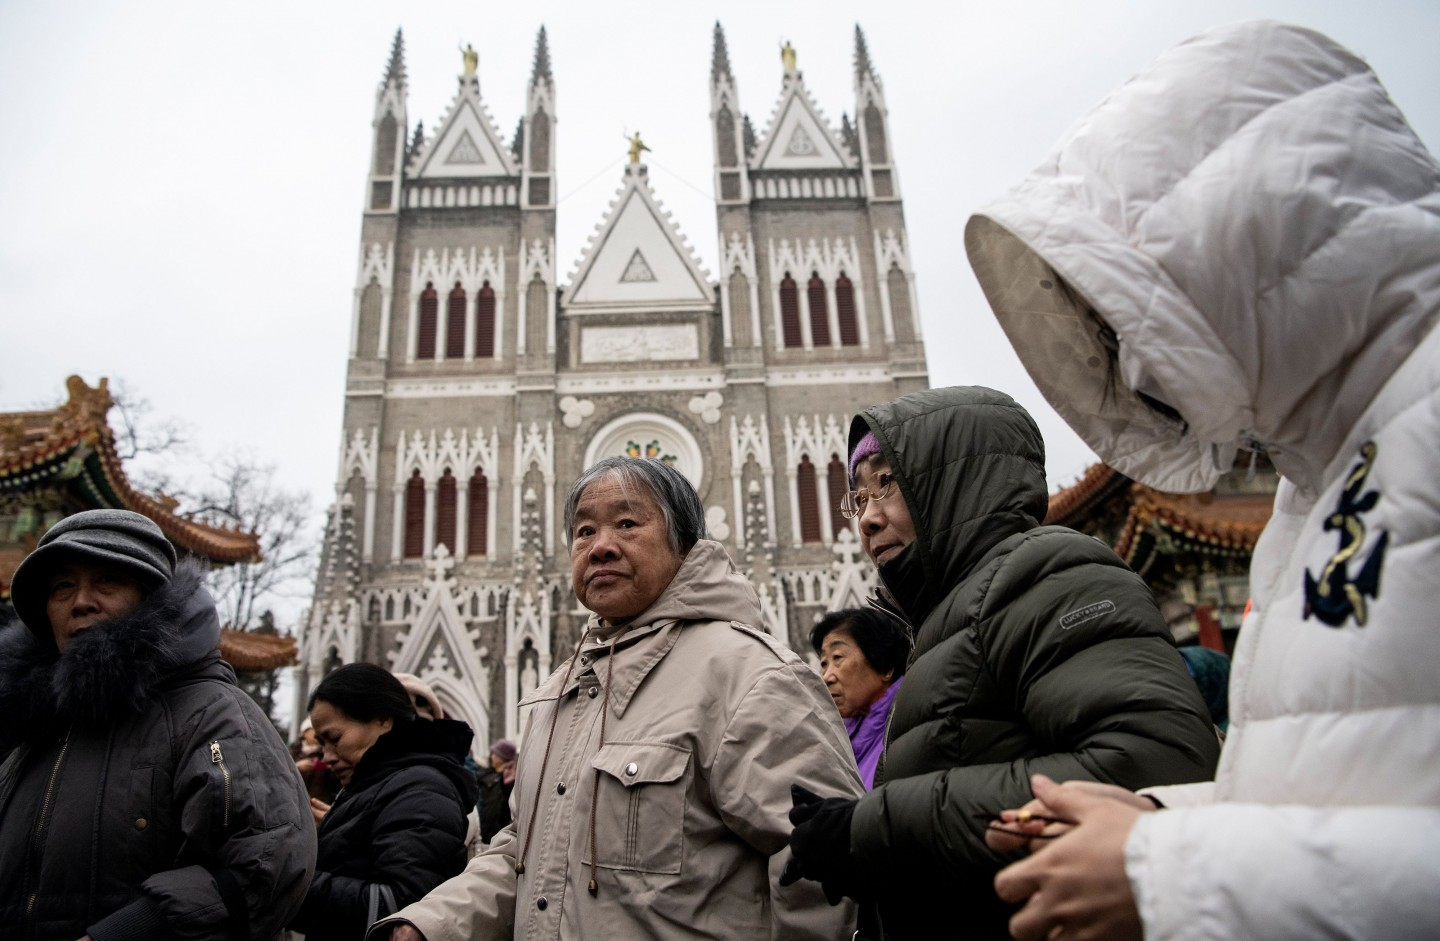 Worshippers attend a Christmas eve mass at the Xishiku Cathedral in Beijing on 24 December 2019. (Noel Celis/AFP)